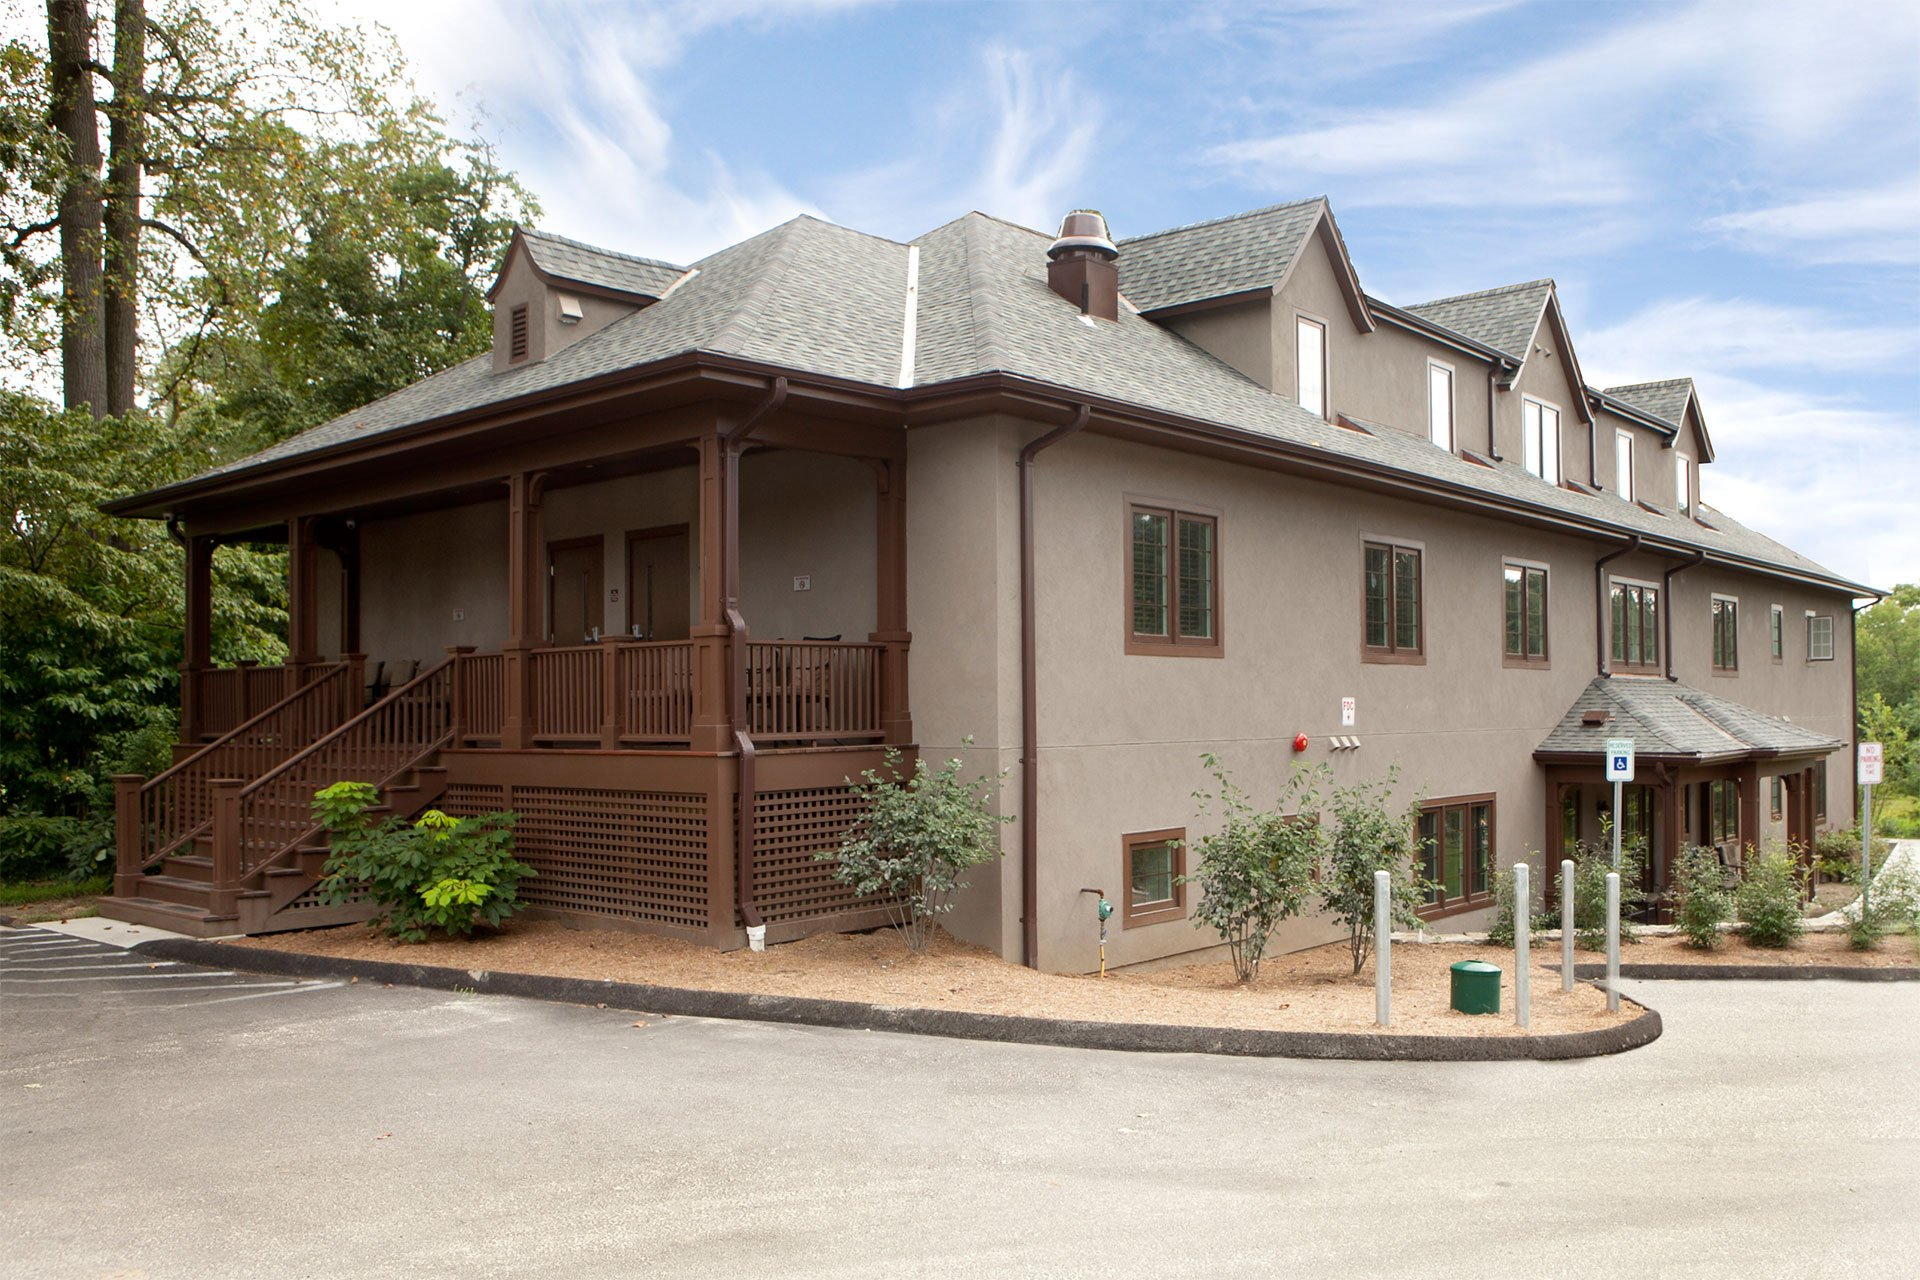 murphy-brothers-contracting-commercial-commercial-quaker-ridge-exterior-03